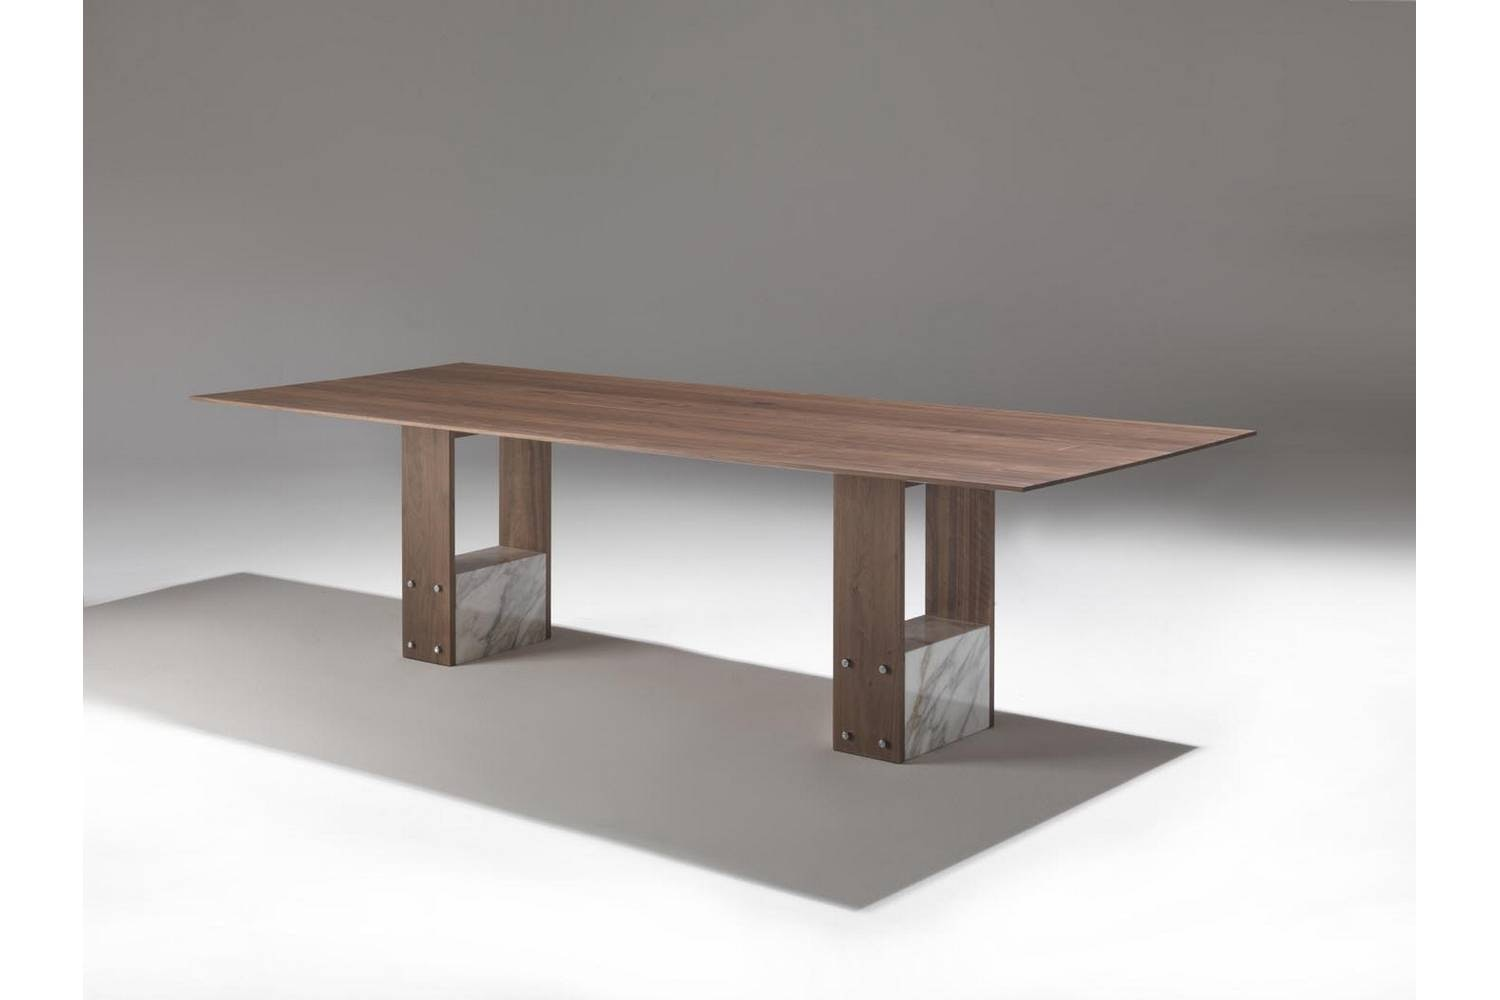 Shani Table by G. Vigano for Porada